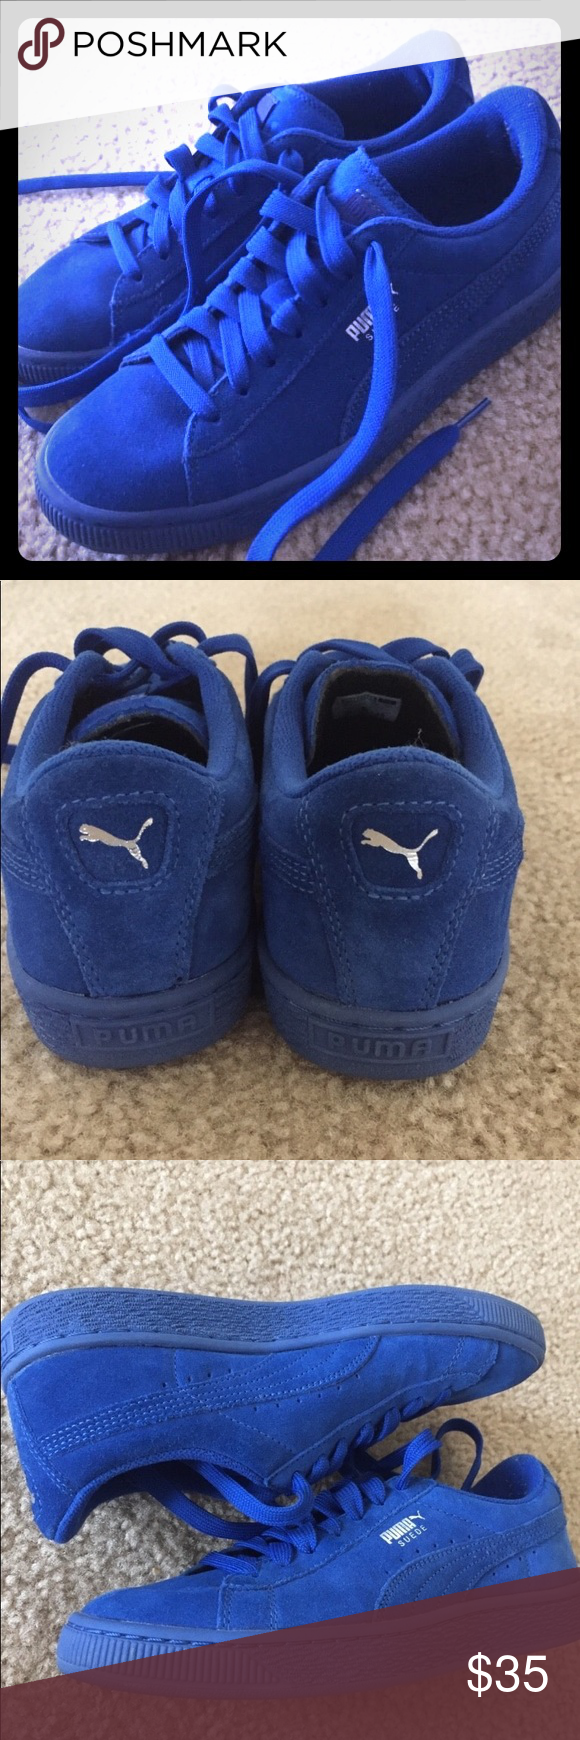 01a3f0fcaa9 Puma Suede Classic Royal Blue Gently worn shoes. Size 5.5 men s (so 7.5  womens) Puma Shoes Sneakers